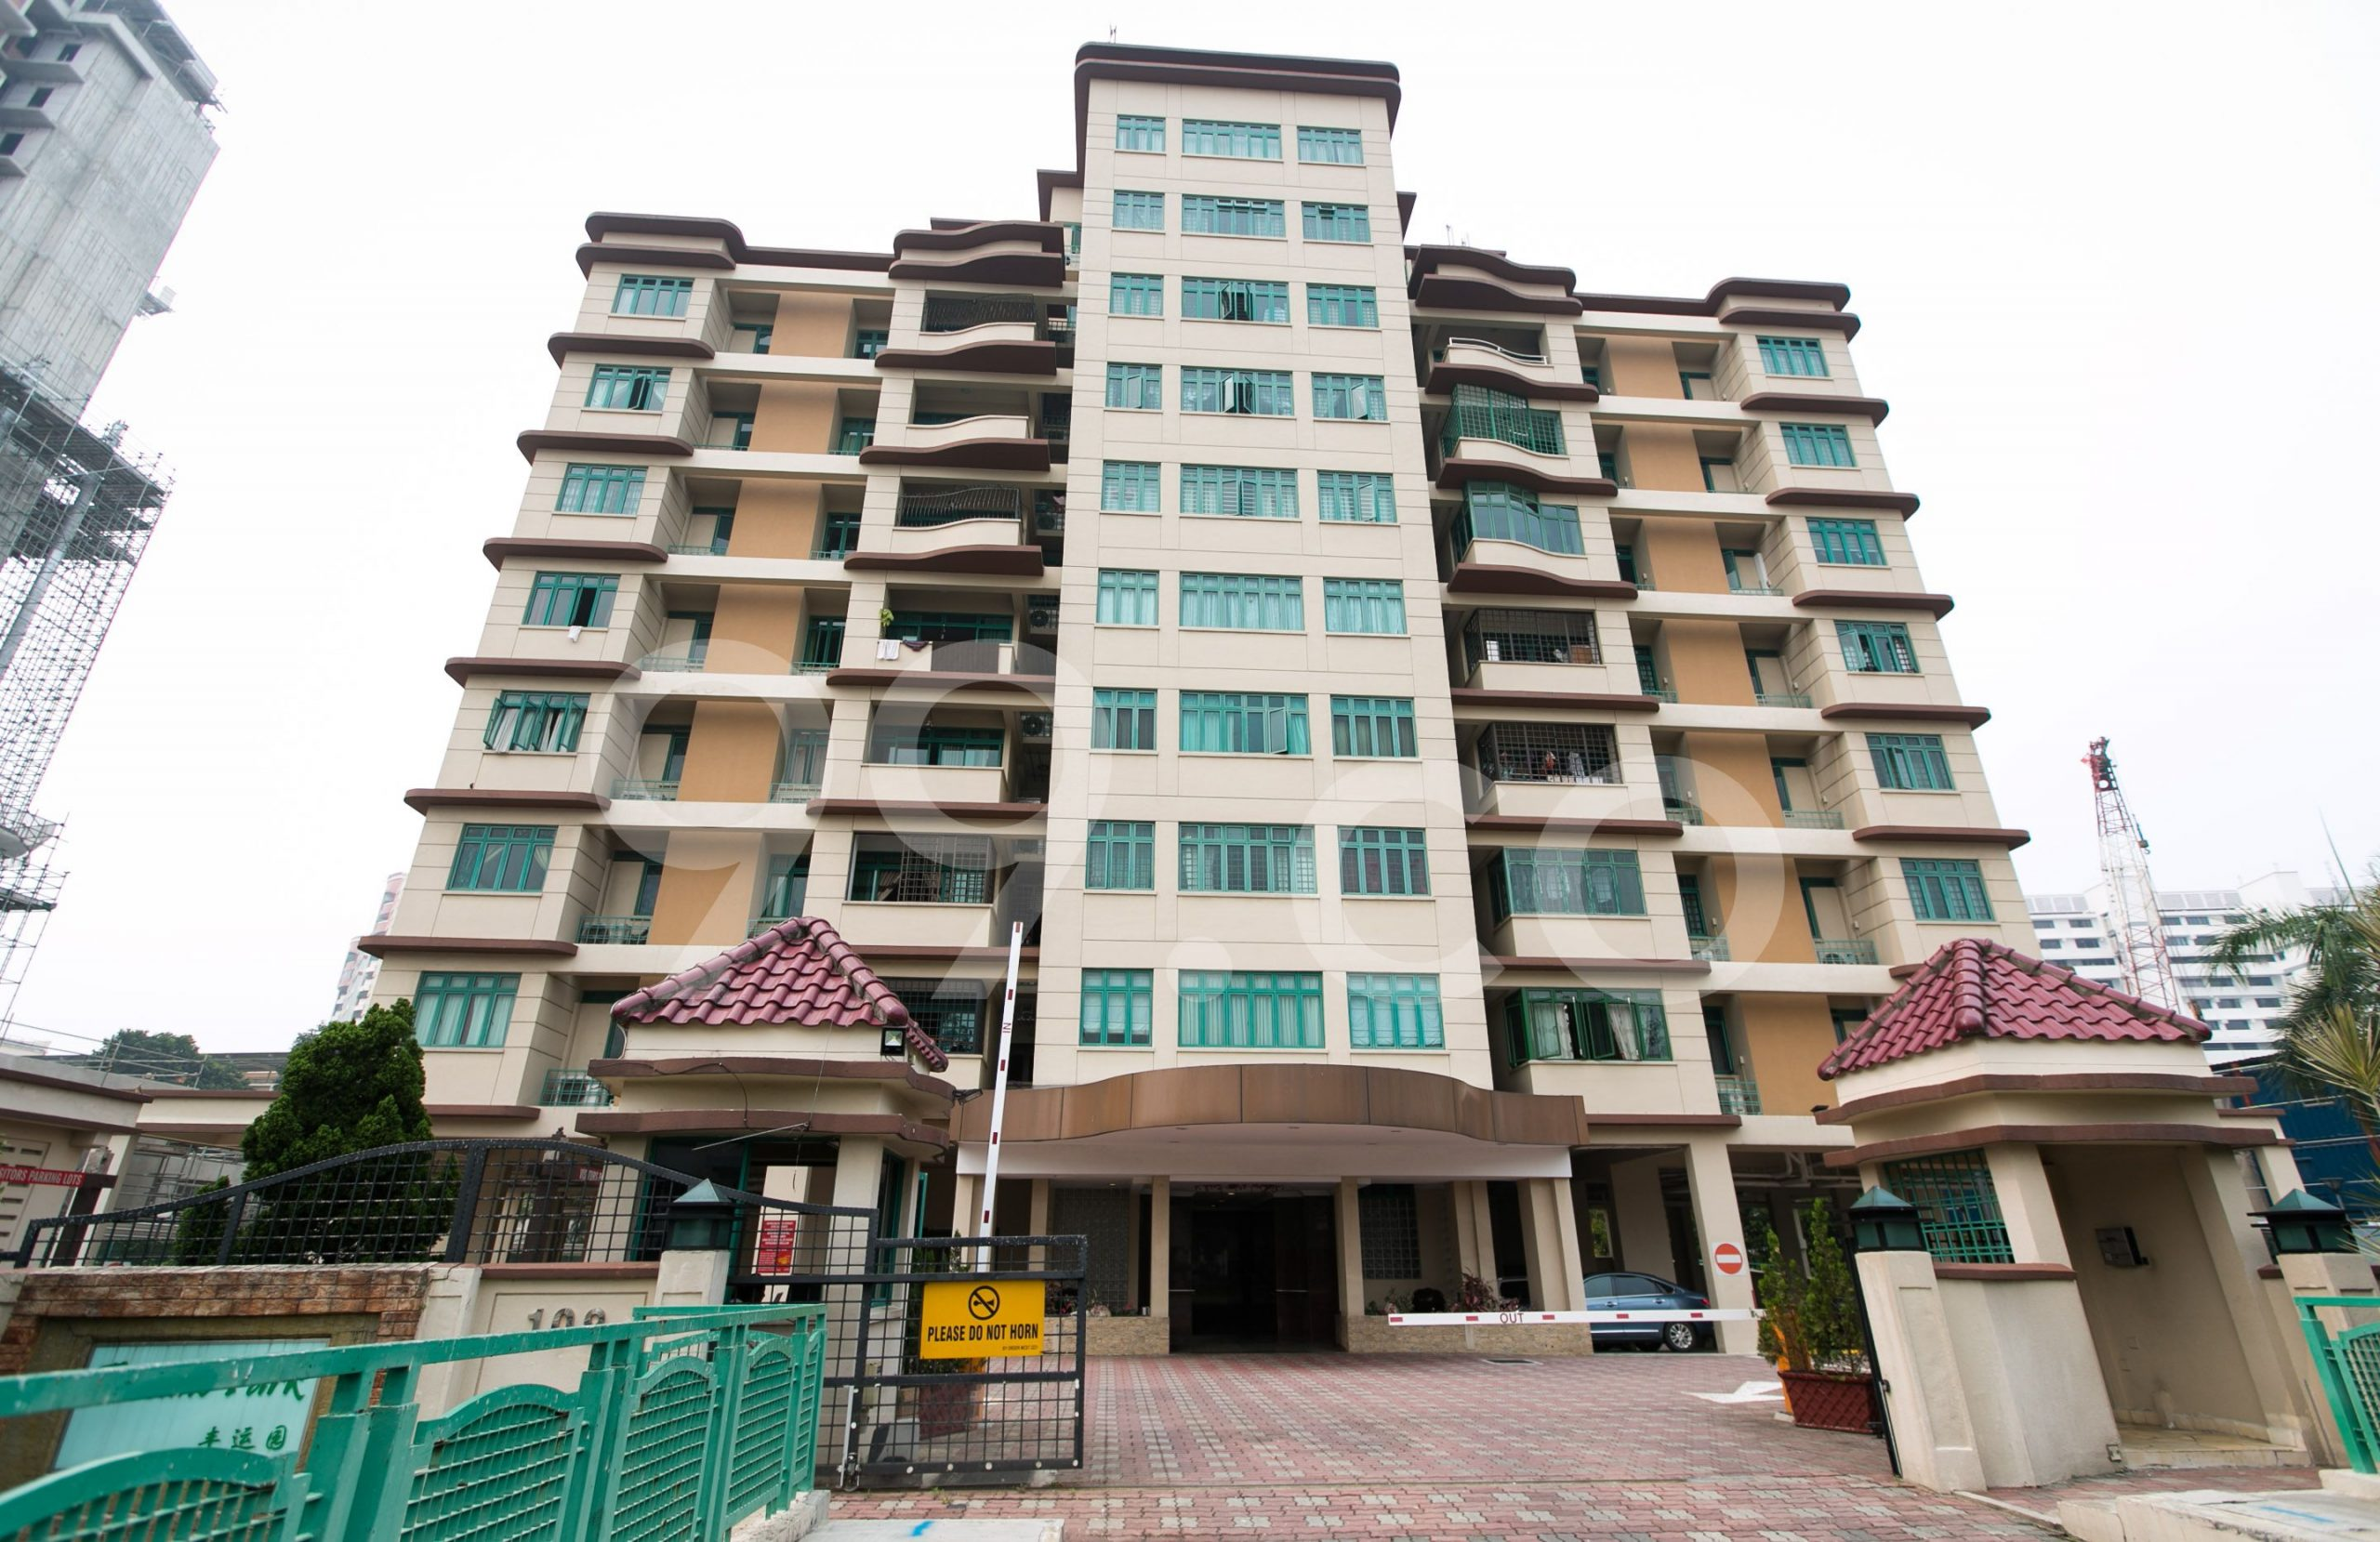 Fortune Park condo, which launched for en bloc in March 2021